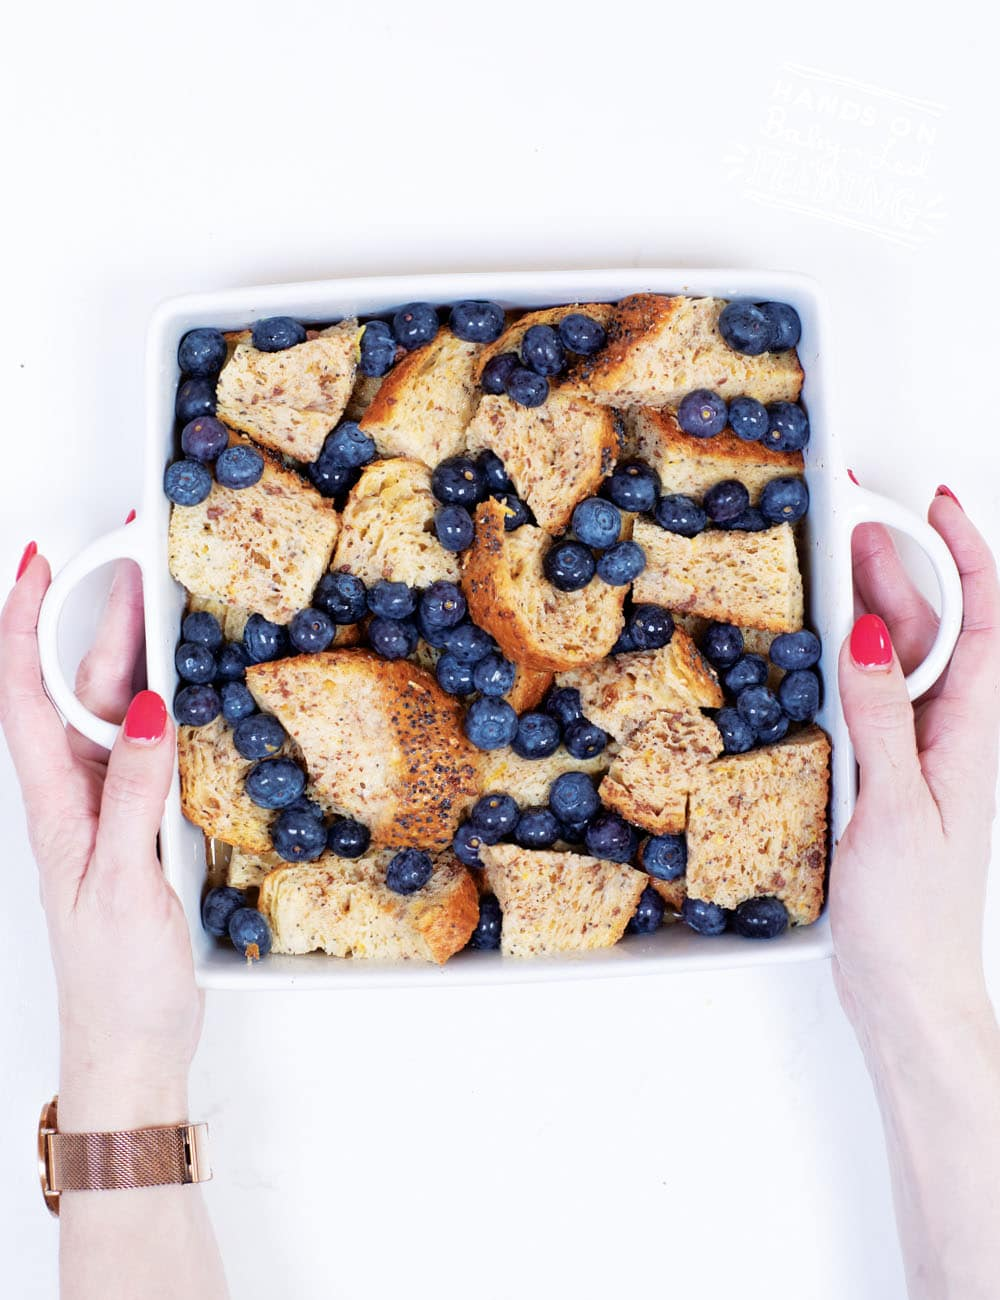 Lemon, Blueberries, and Chi seeds are just a few of the yummy healthy ingredients in this easy refined sugar free french toast bake! Simple step by step images make this baby led weaning recipe easy-to-make. Prepare ahead and bake the next morning for a quick and easy breakfast. #babyledweaning #babyledfeeding #frenchtoast #blueberryrecipe #mealprep